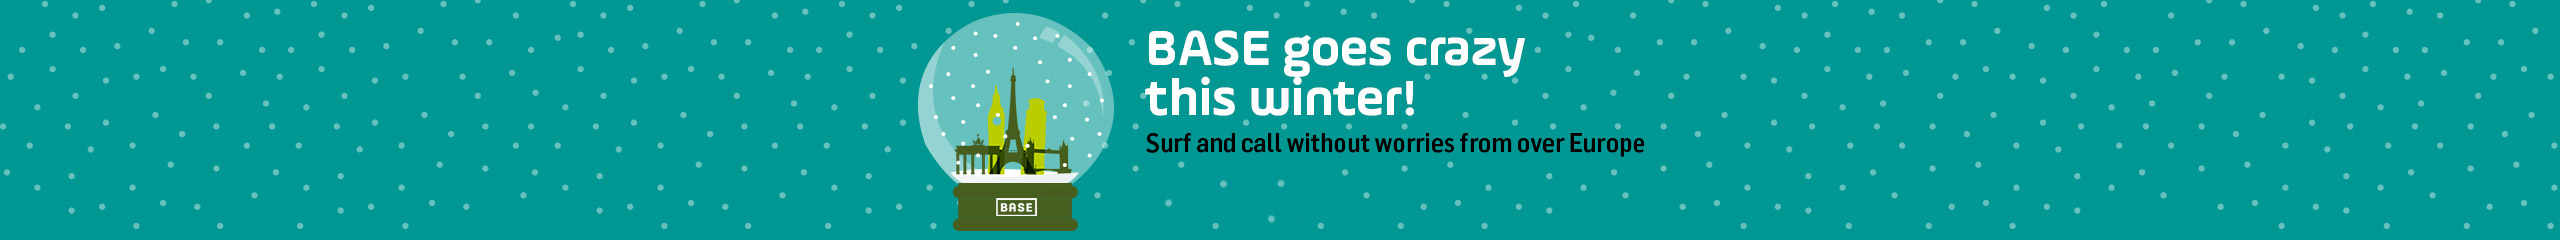 Winter deals - BASE